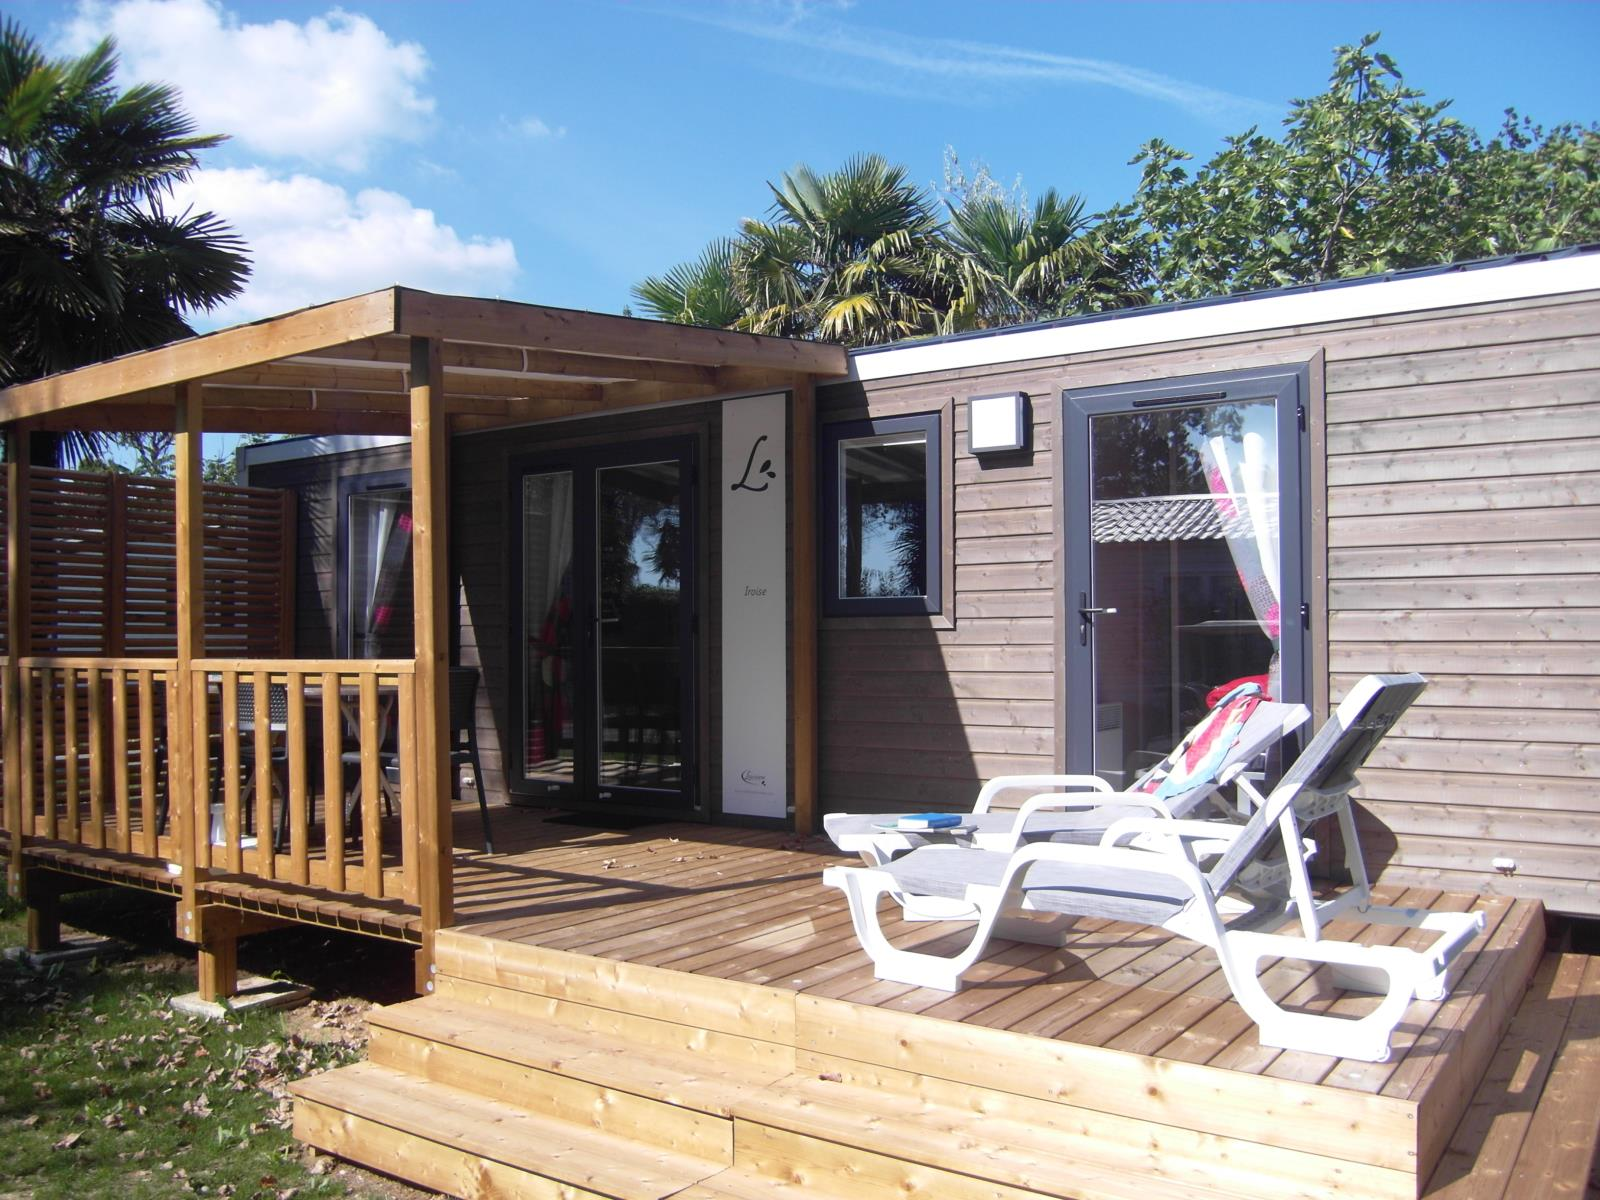 Location - Chalet Iroise 2 Chambres 4Pers Incluse 2 Sdb 2 Wc (M) - Camping Airotel Oléron